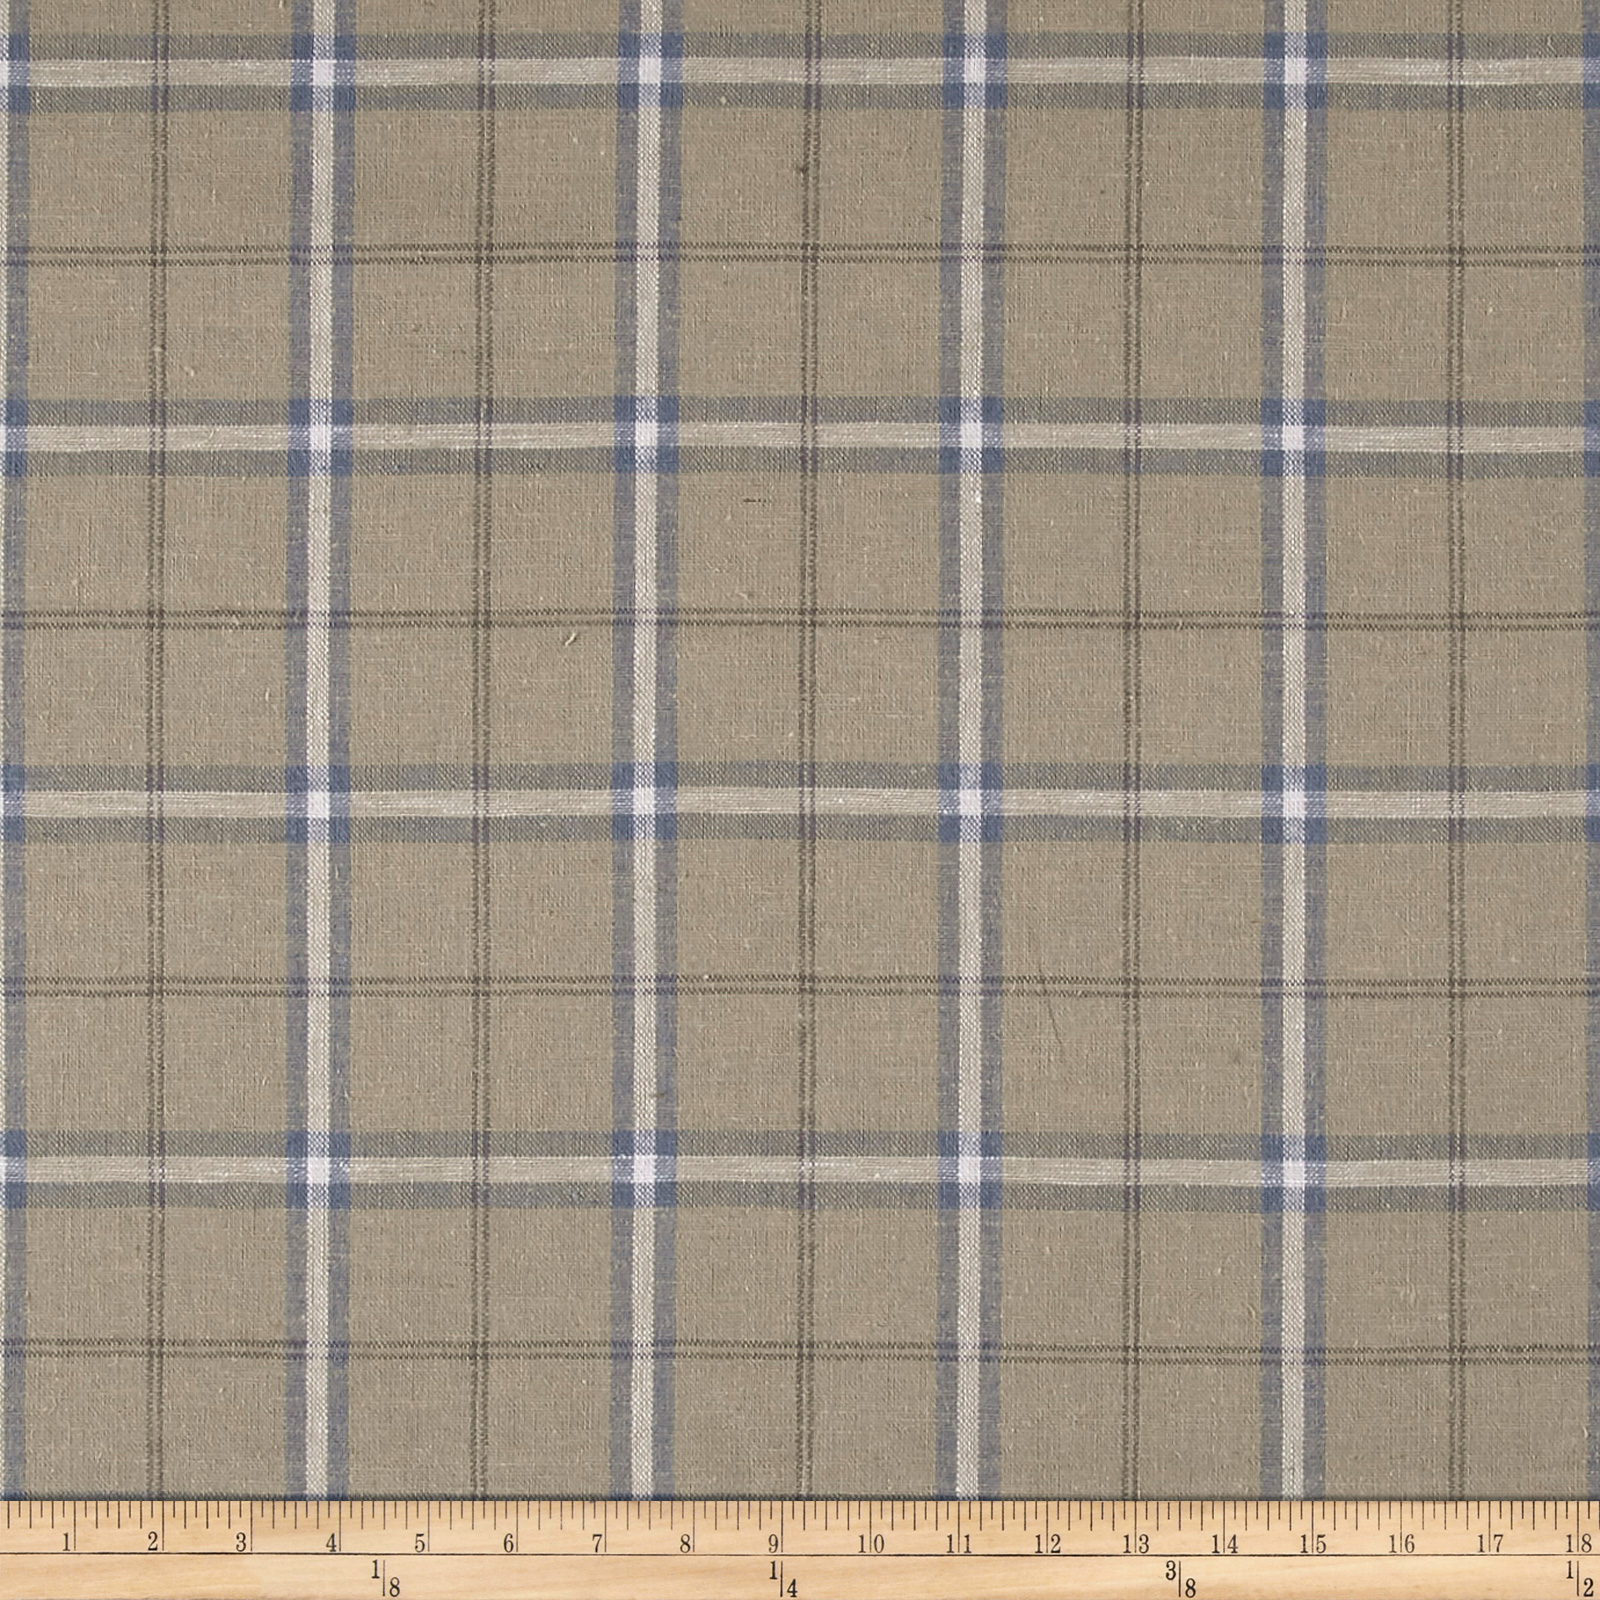 Image of Stof Shabby Chic Linen Blend Large Plaid Blue Fabric